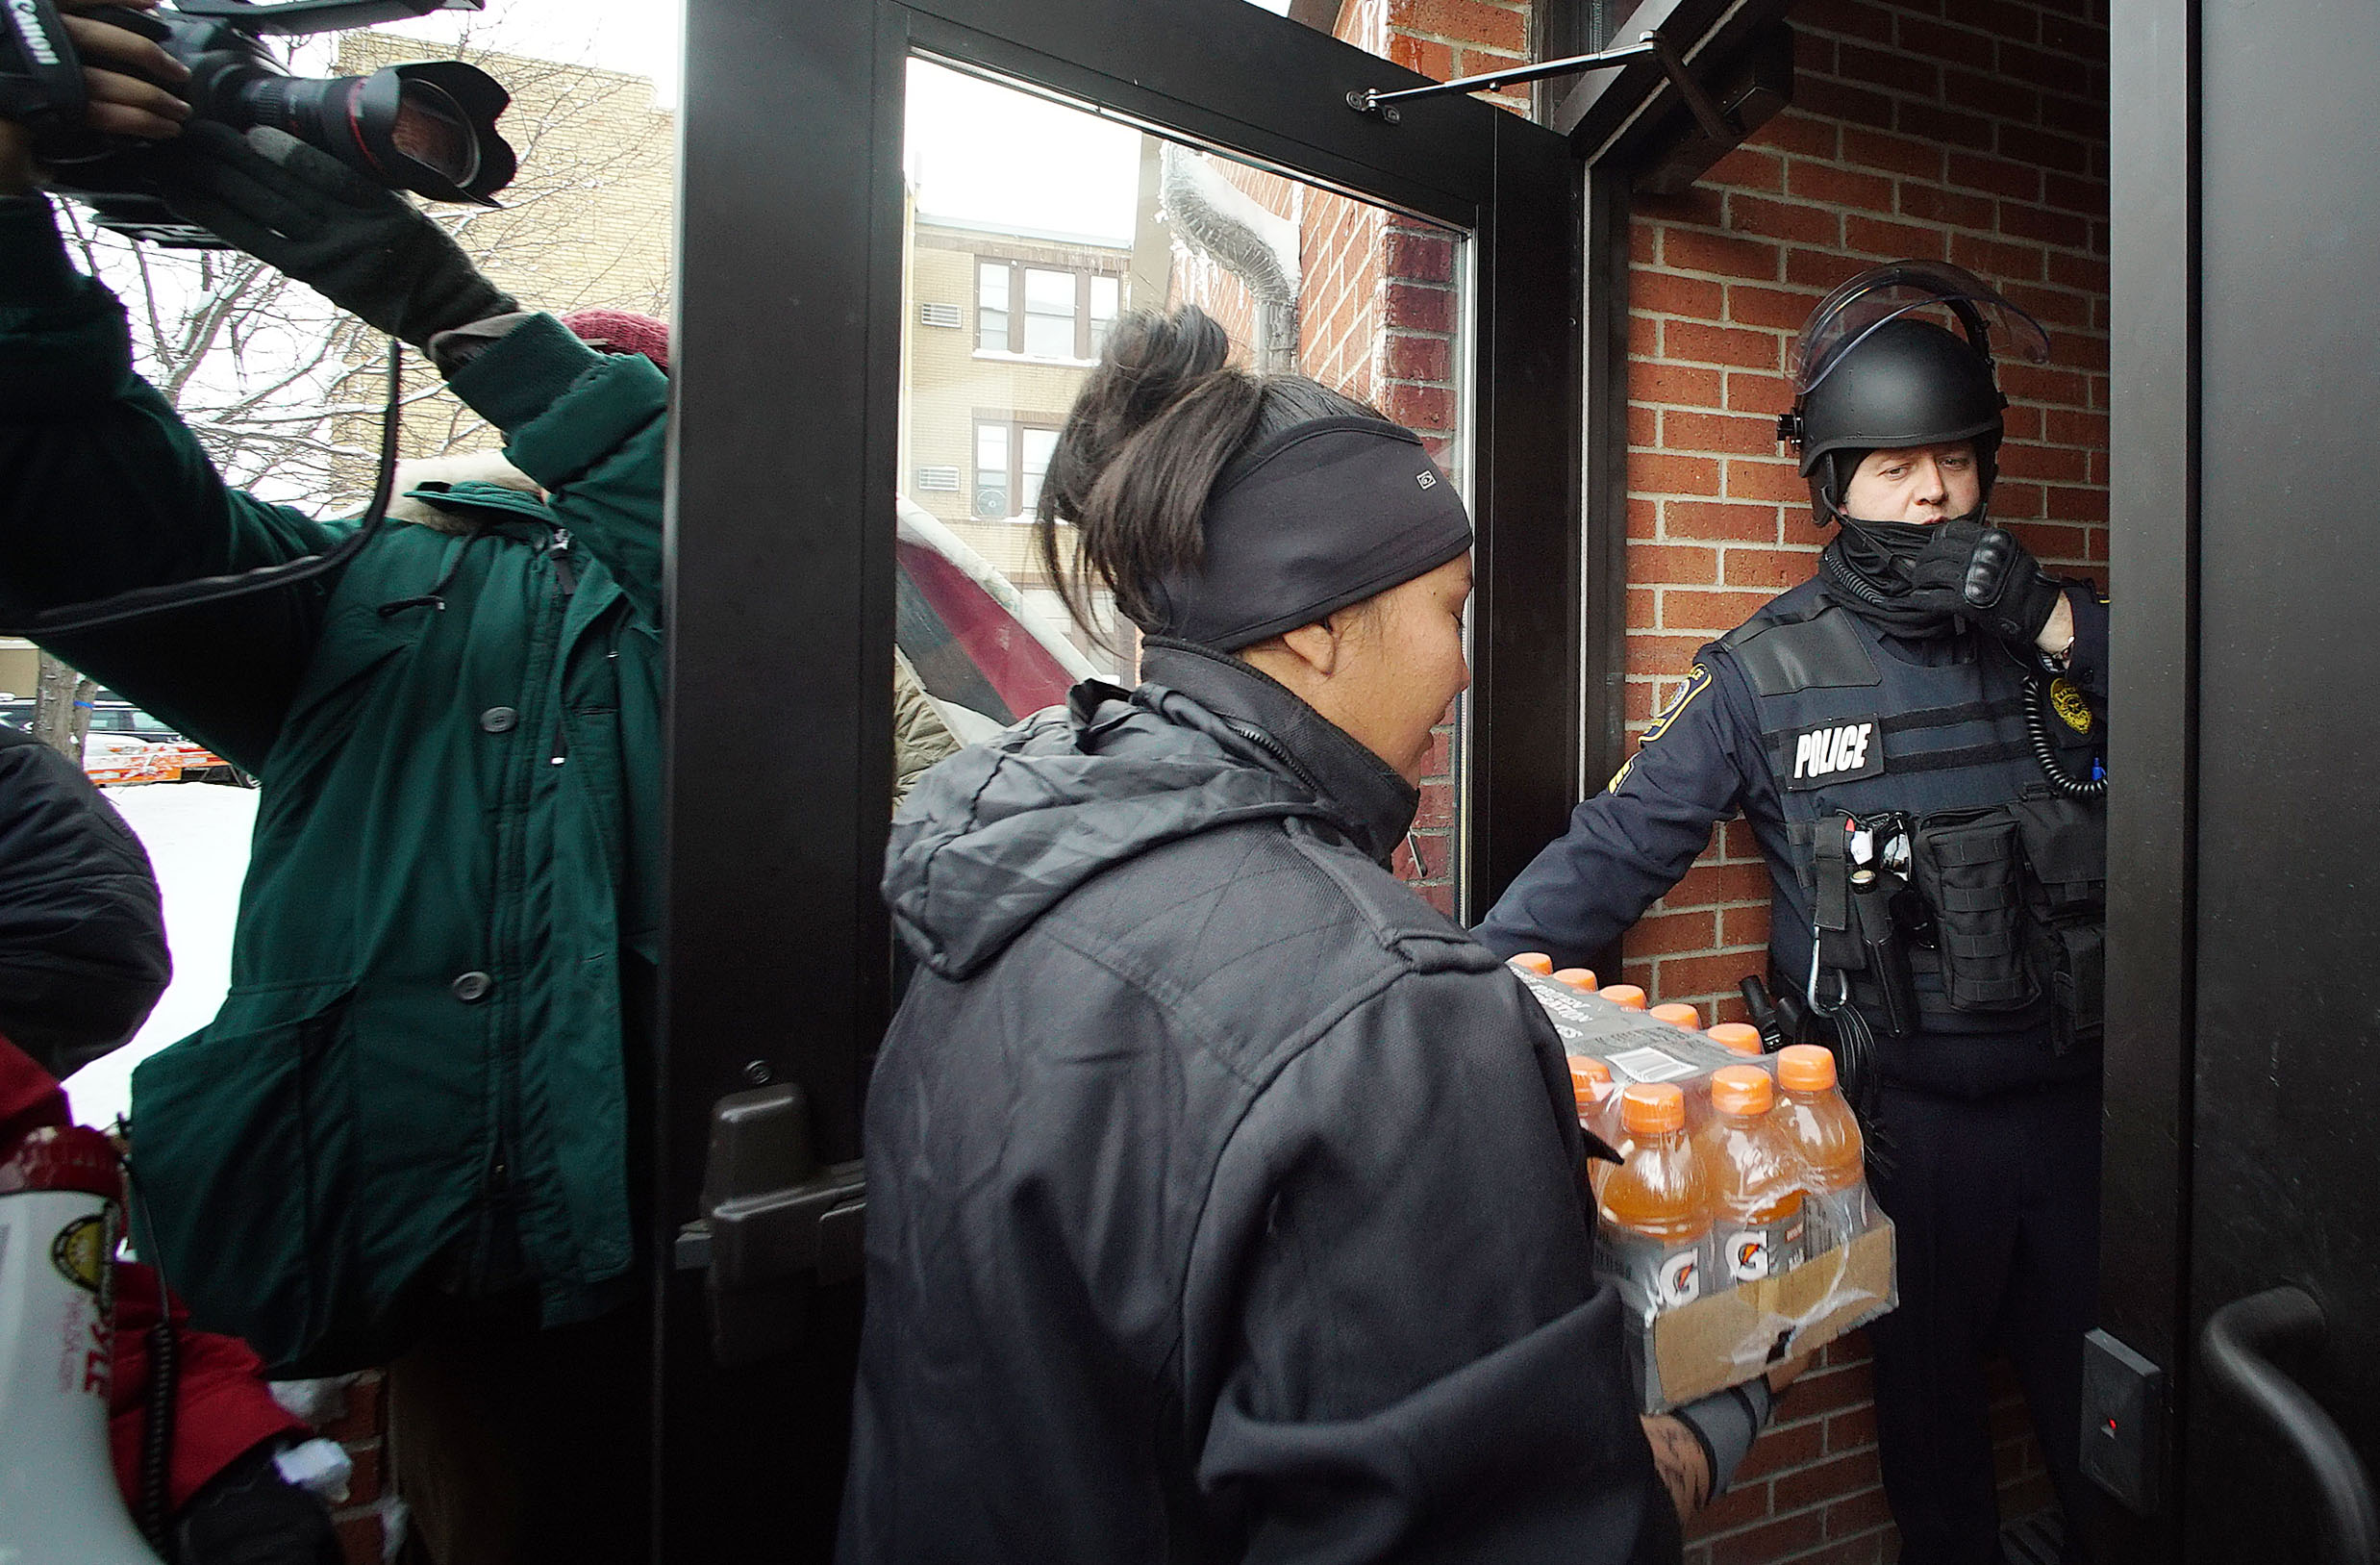 <p>At one point the Morton County Sheriff&#8217;s Department said it would cut off supplies to the encampment, prompting a party of protesters to drive an hour to the sheriff&#8217;s office in Mandan and deliver their ownsupplies to the officers.</p>